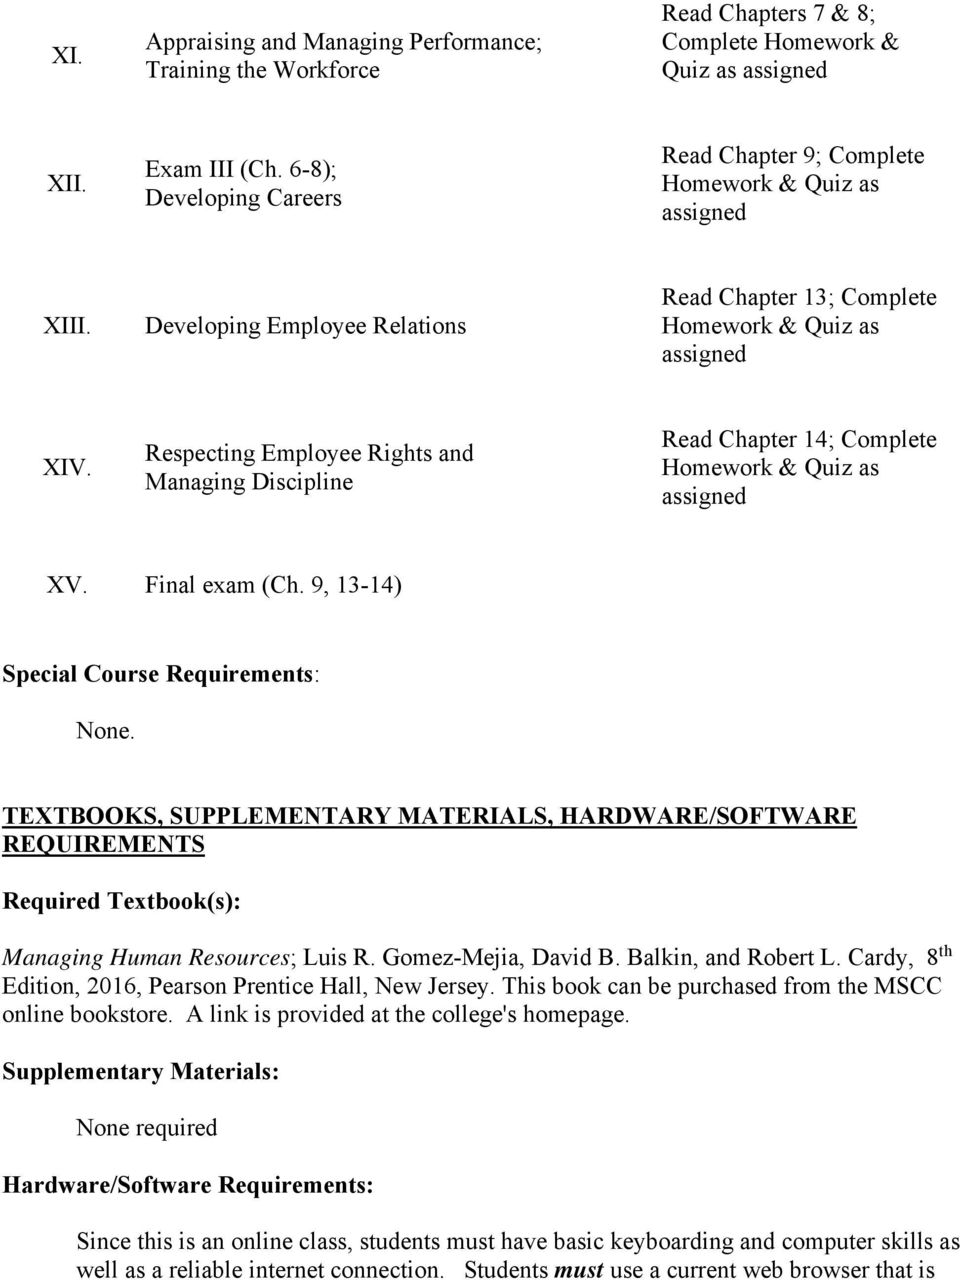 9, 13-14) Special Course Requirements: None. TEXTBOOKS, SUPPLEMENTARY MATERIALS, HARDWARE/SOFTWARE REQUIREMENTS Required Textbook(s): Managing Human Resources; Luis R. Gomez-Mejia, David B.